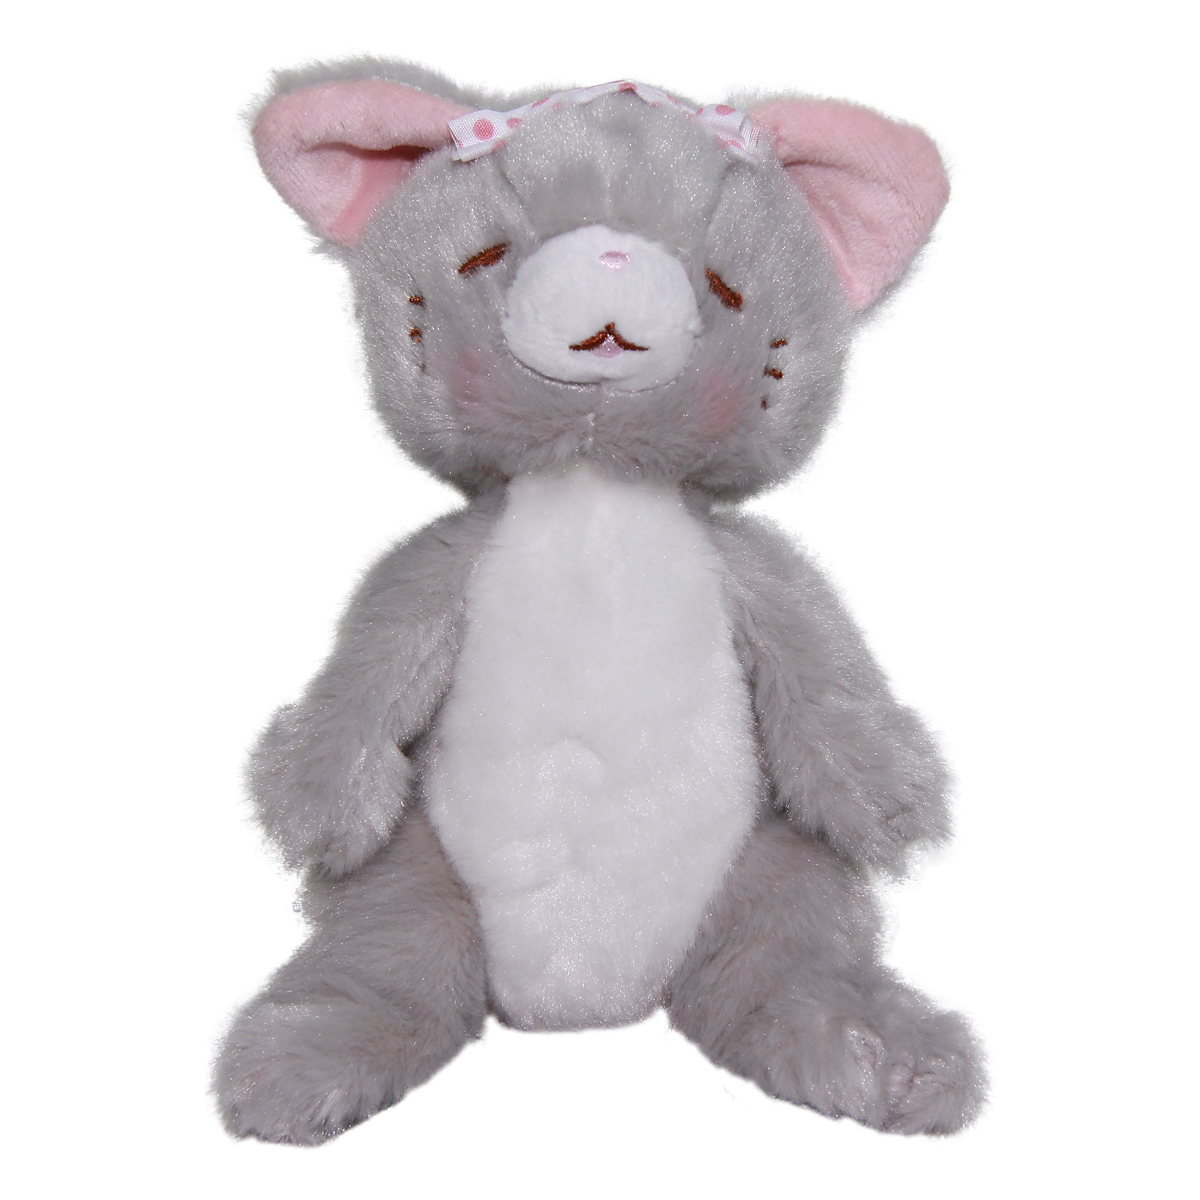 Cat Plush Doll, Hot Springs Collection, Stuffed Animal Toy, Gray, 6 Inches